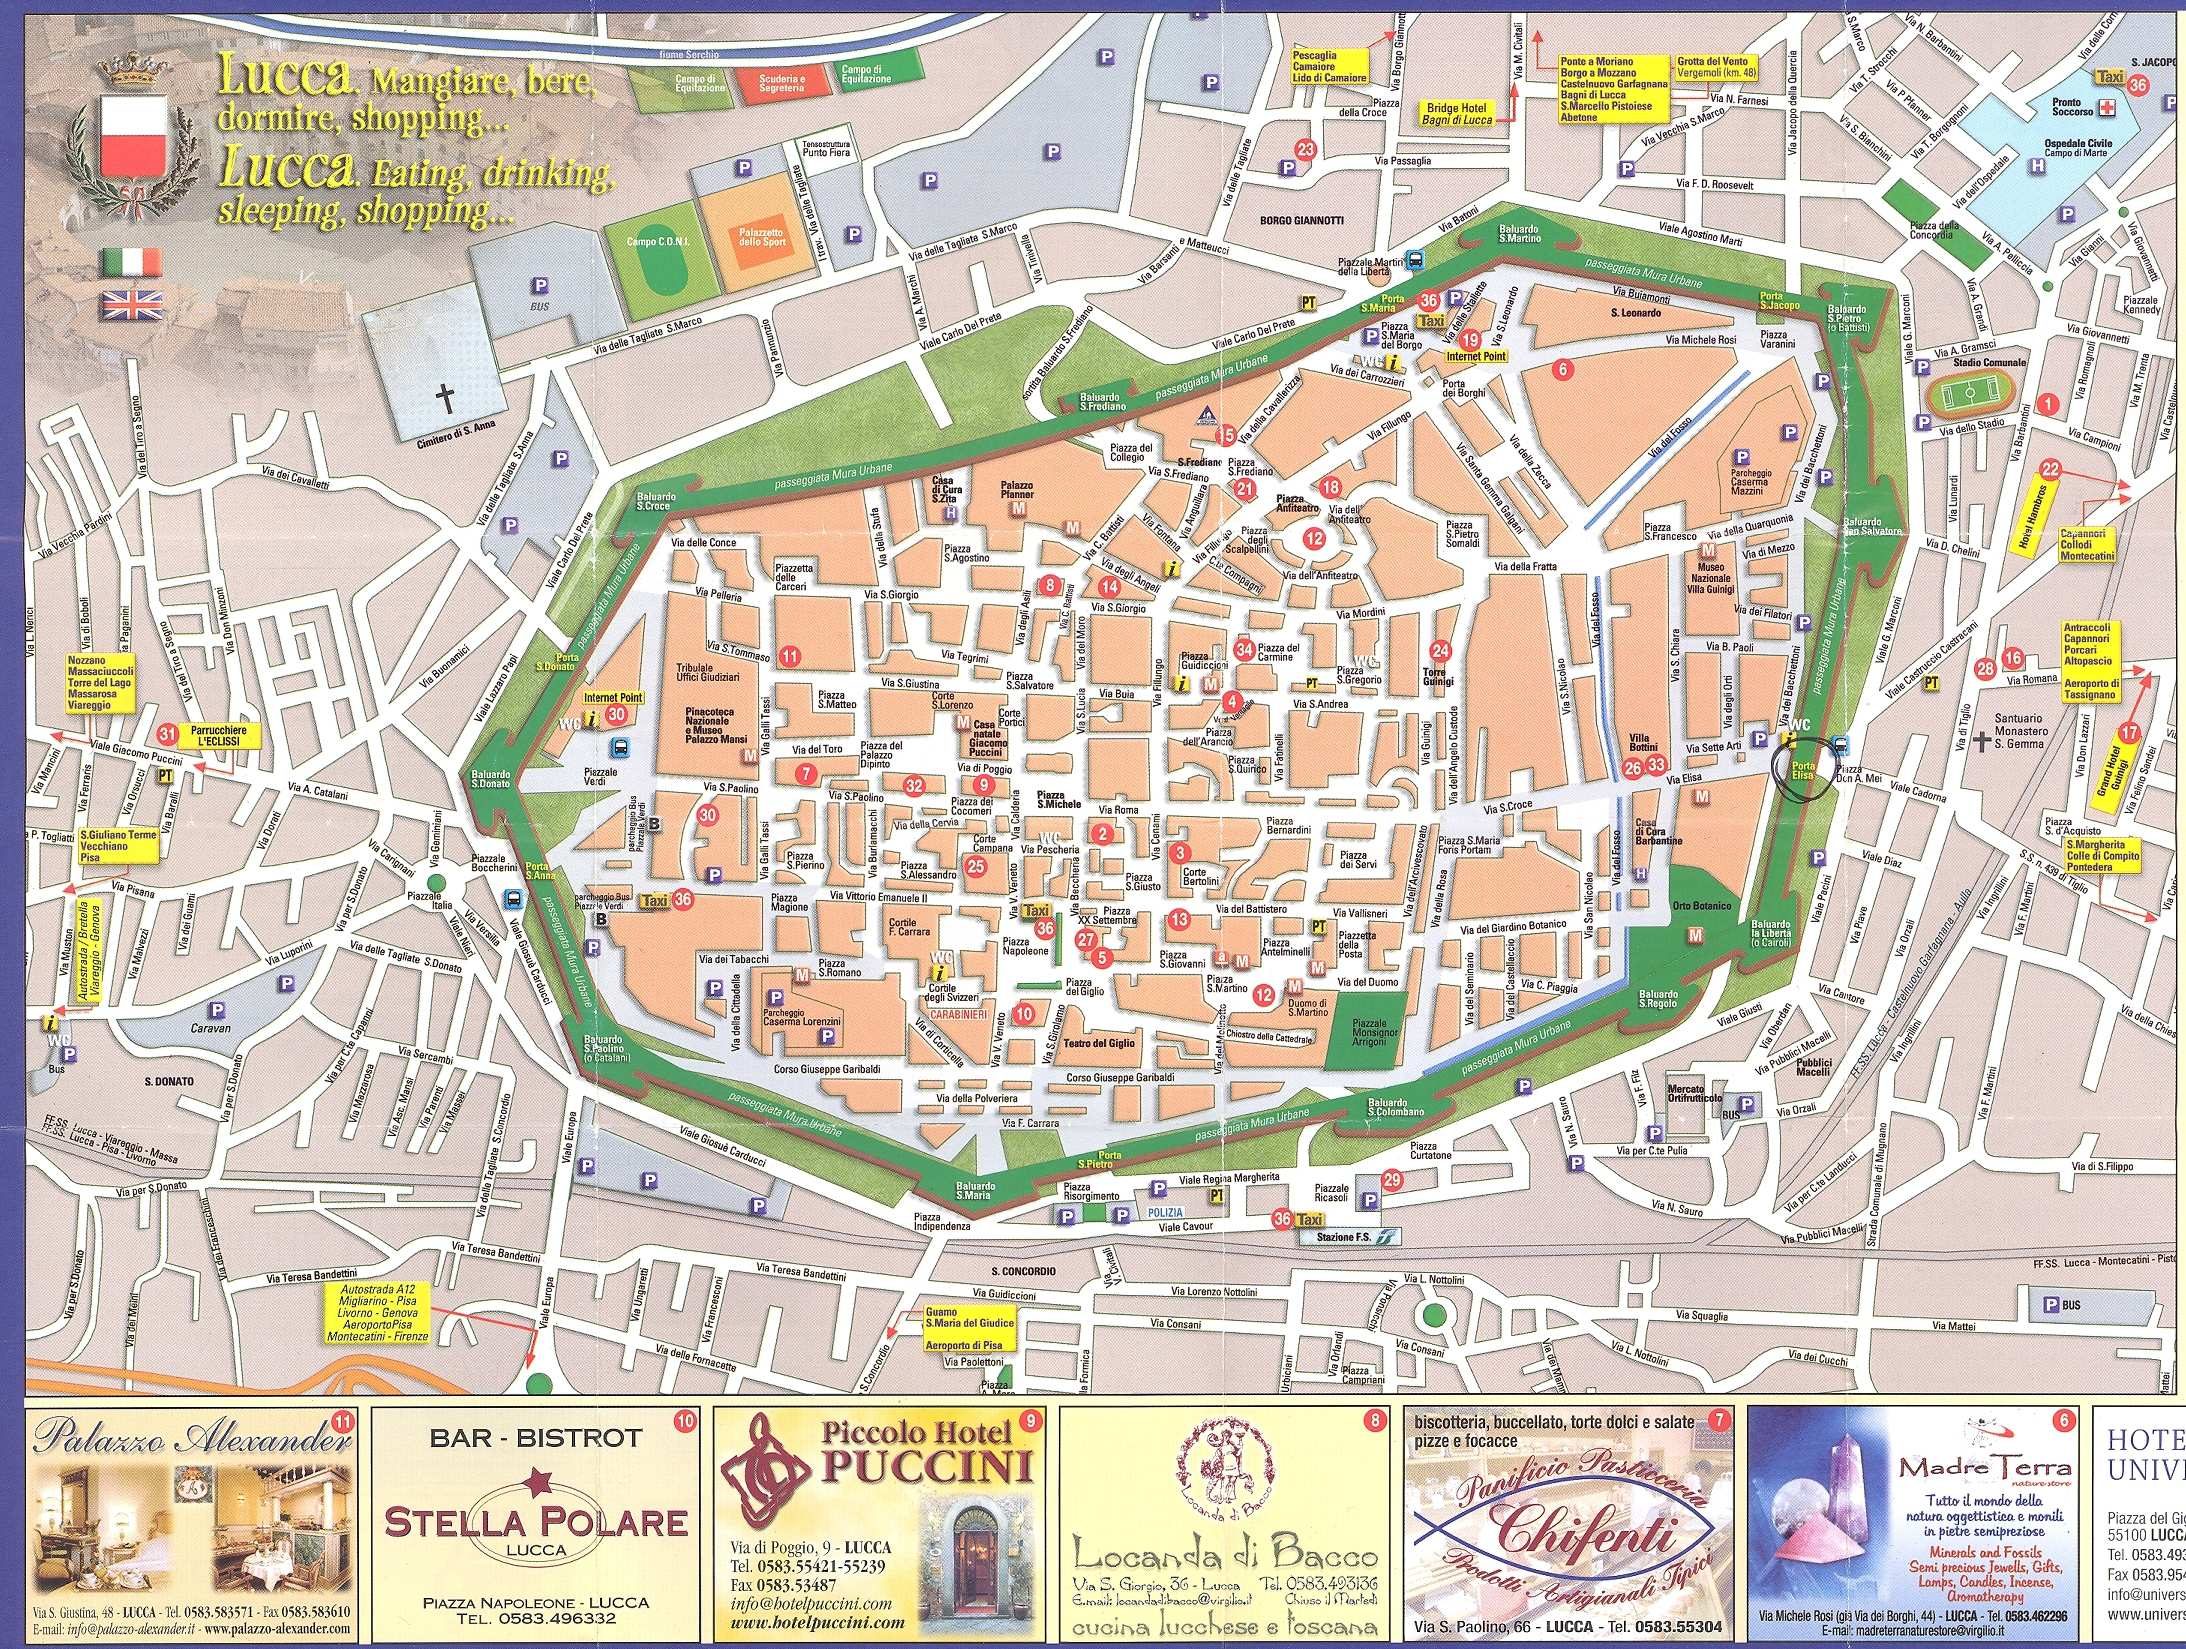 Large Lucca Maps for Free Download and Print HighResolution and